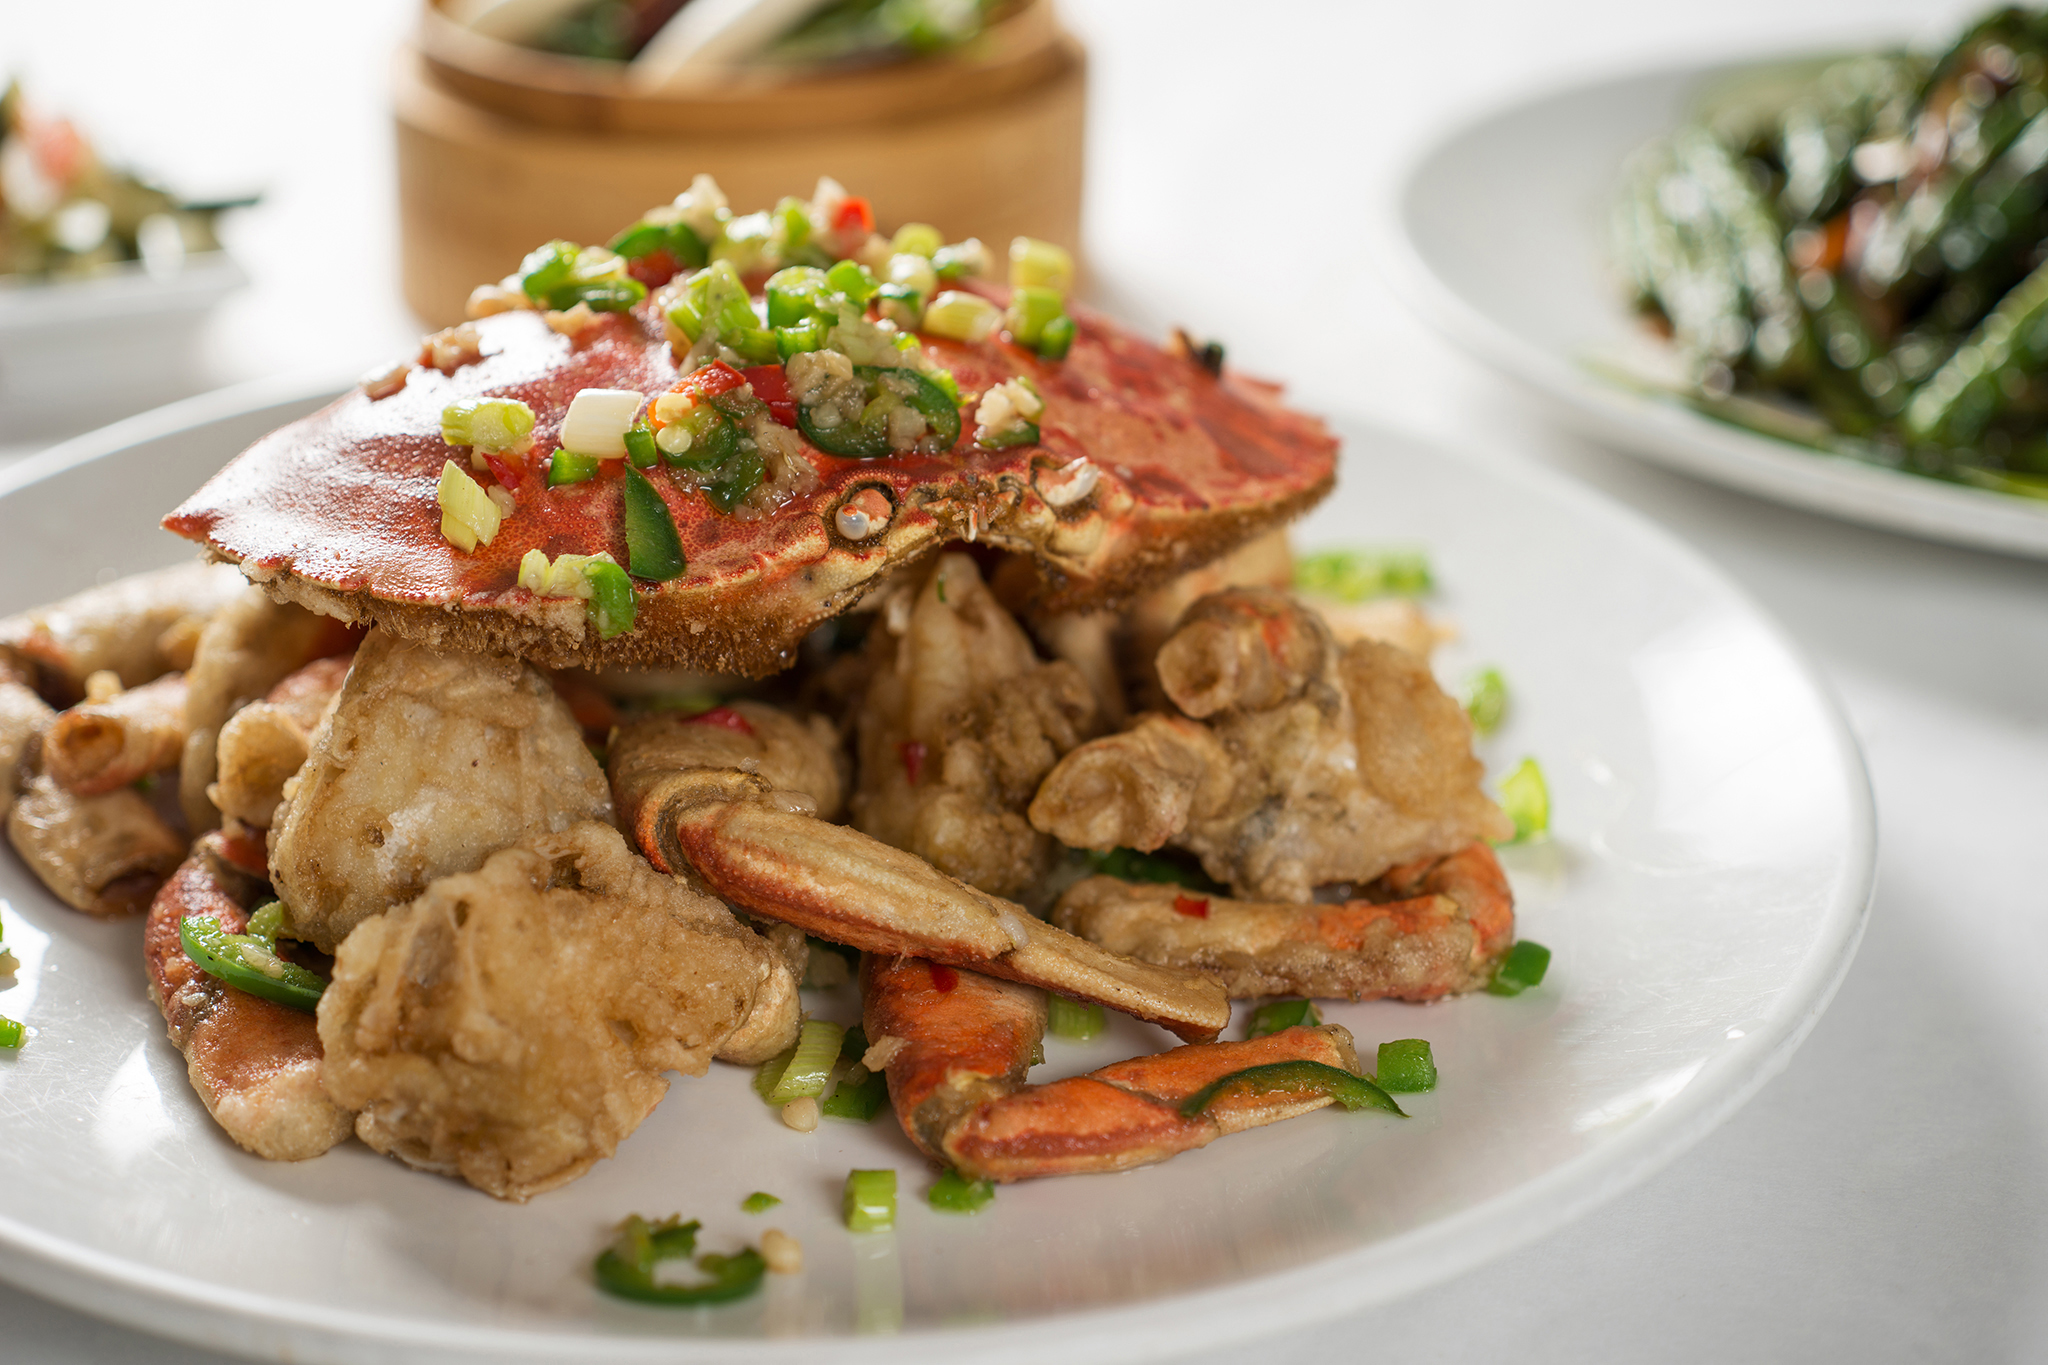 Spicy and salted crab at Silver Seafood